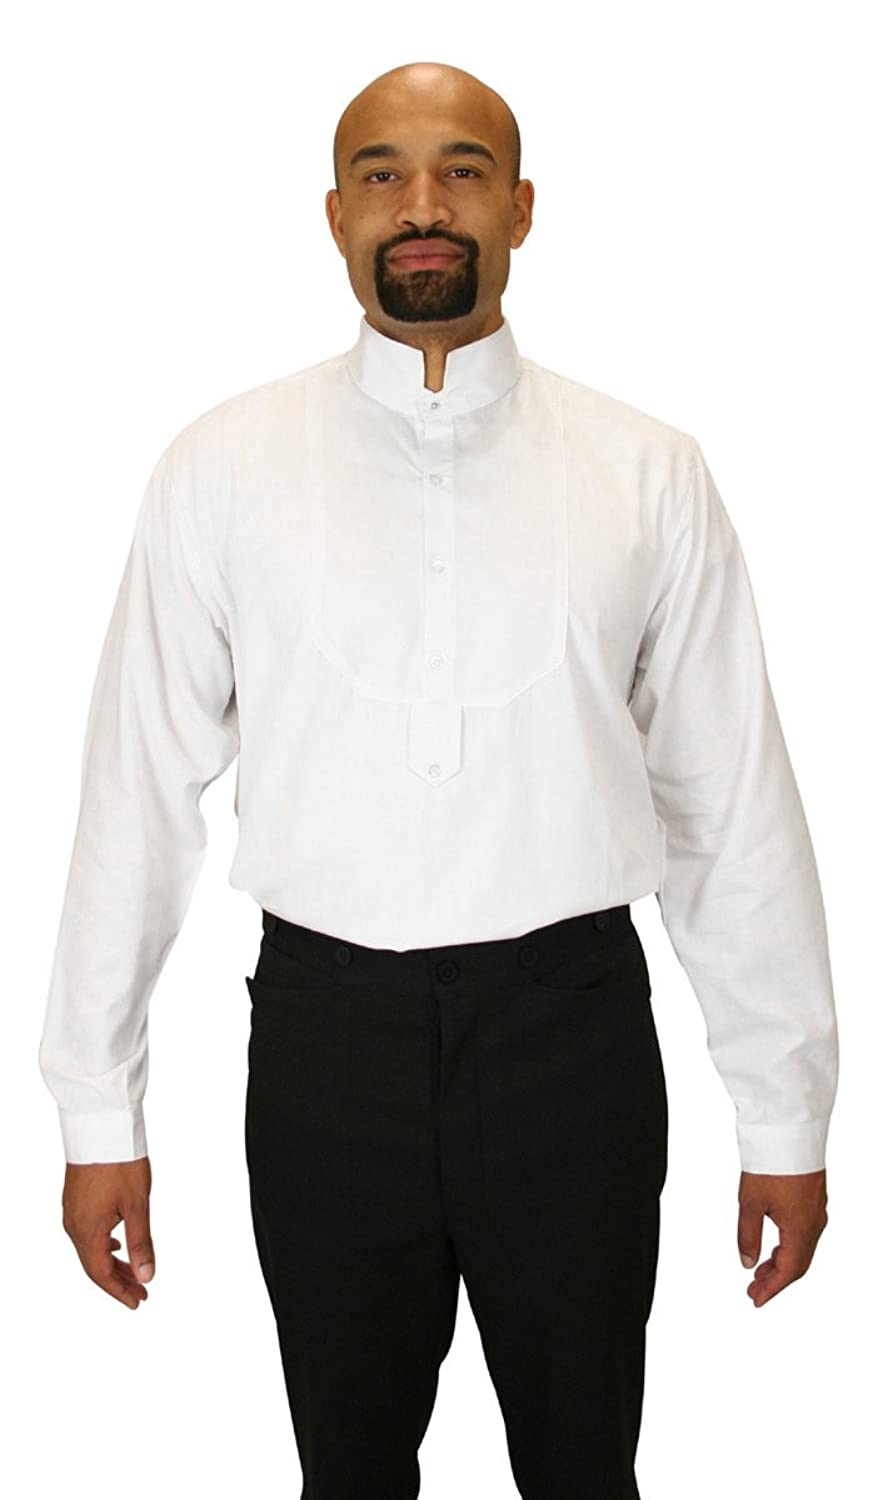 Victorian Men's Tuxedo, Tailcoats, Formalwear Guide Mens Victorian Collar Dress Shirt $59.95 AT vintagedancer.com